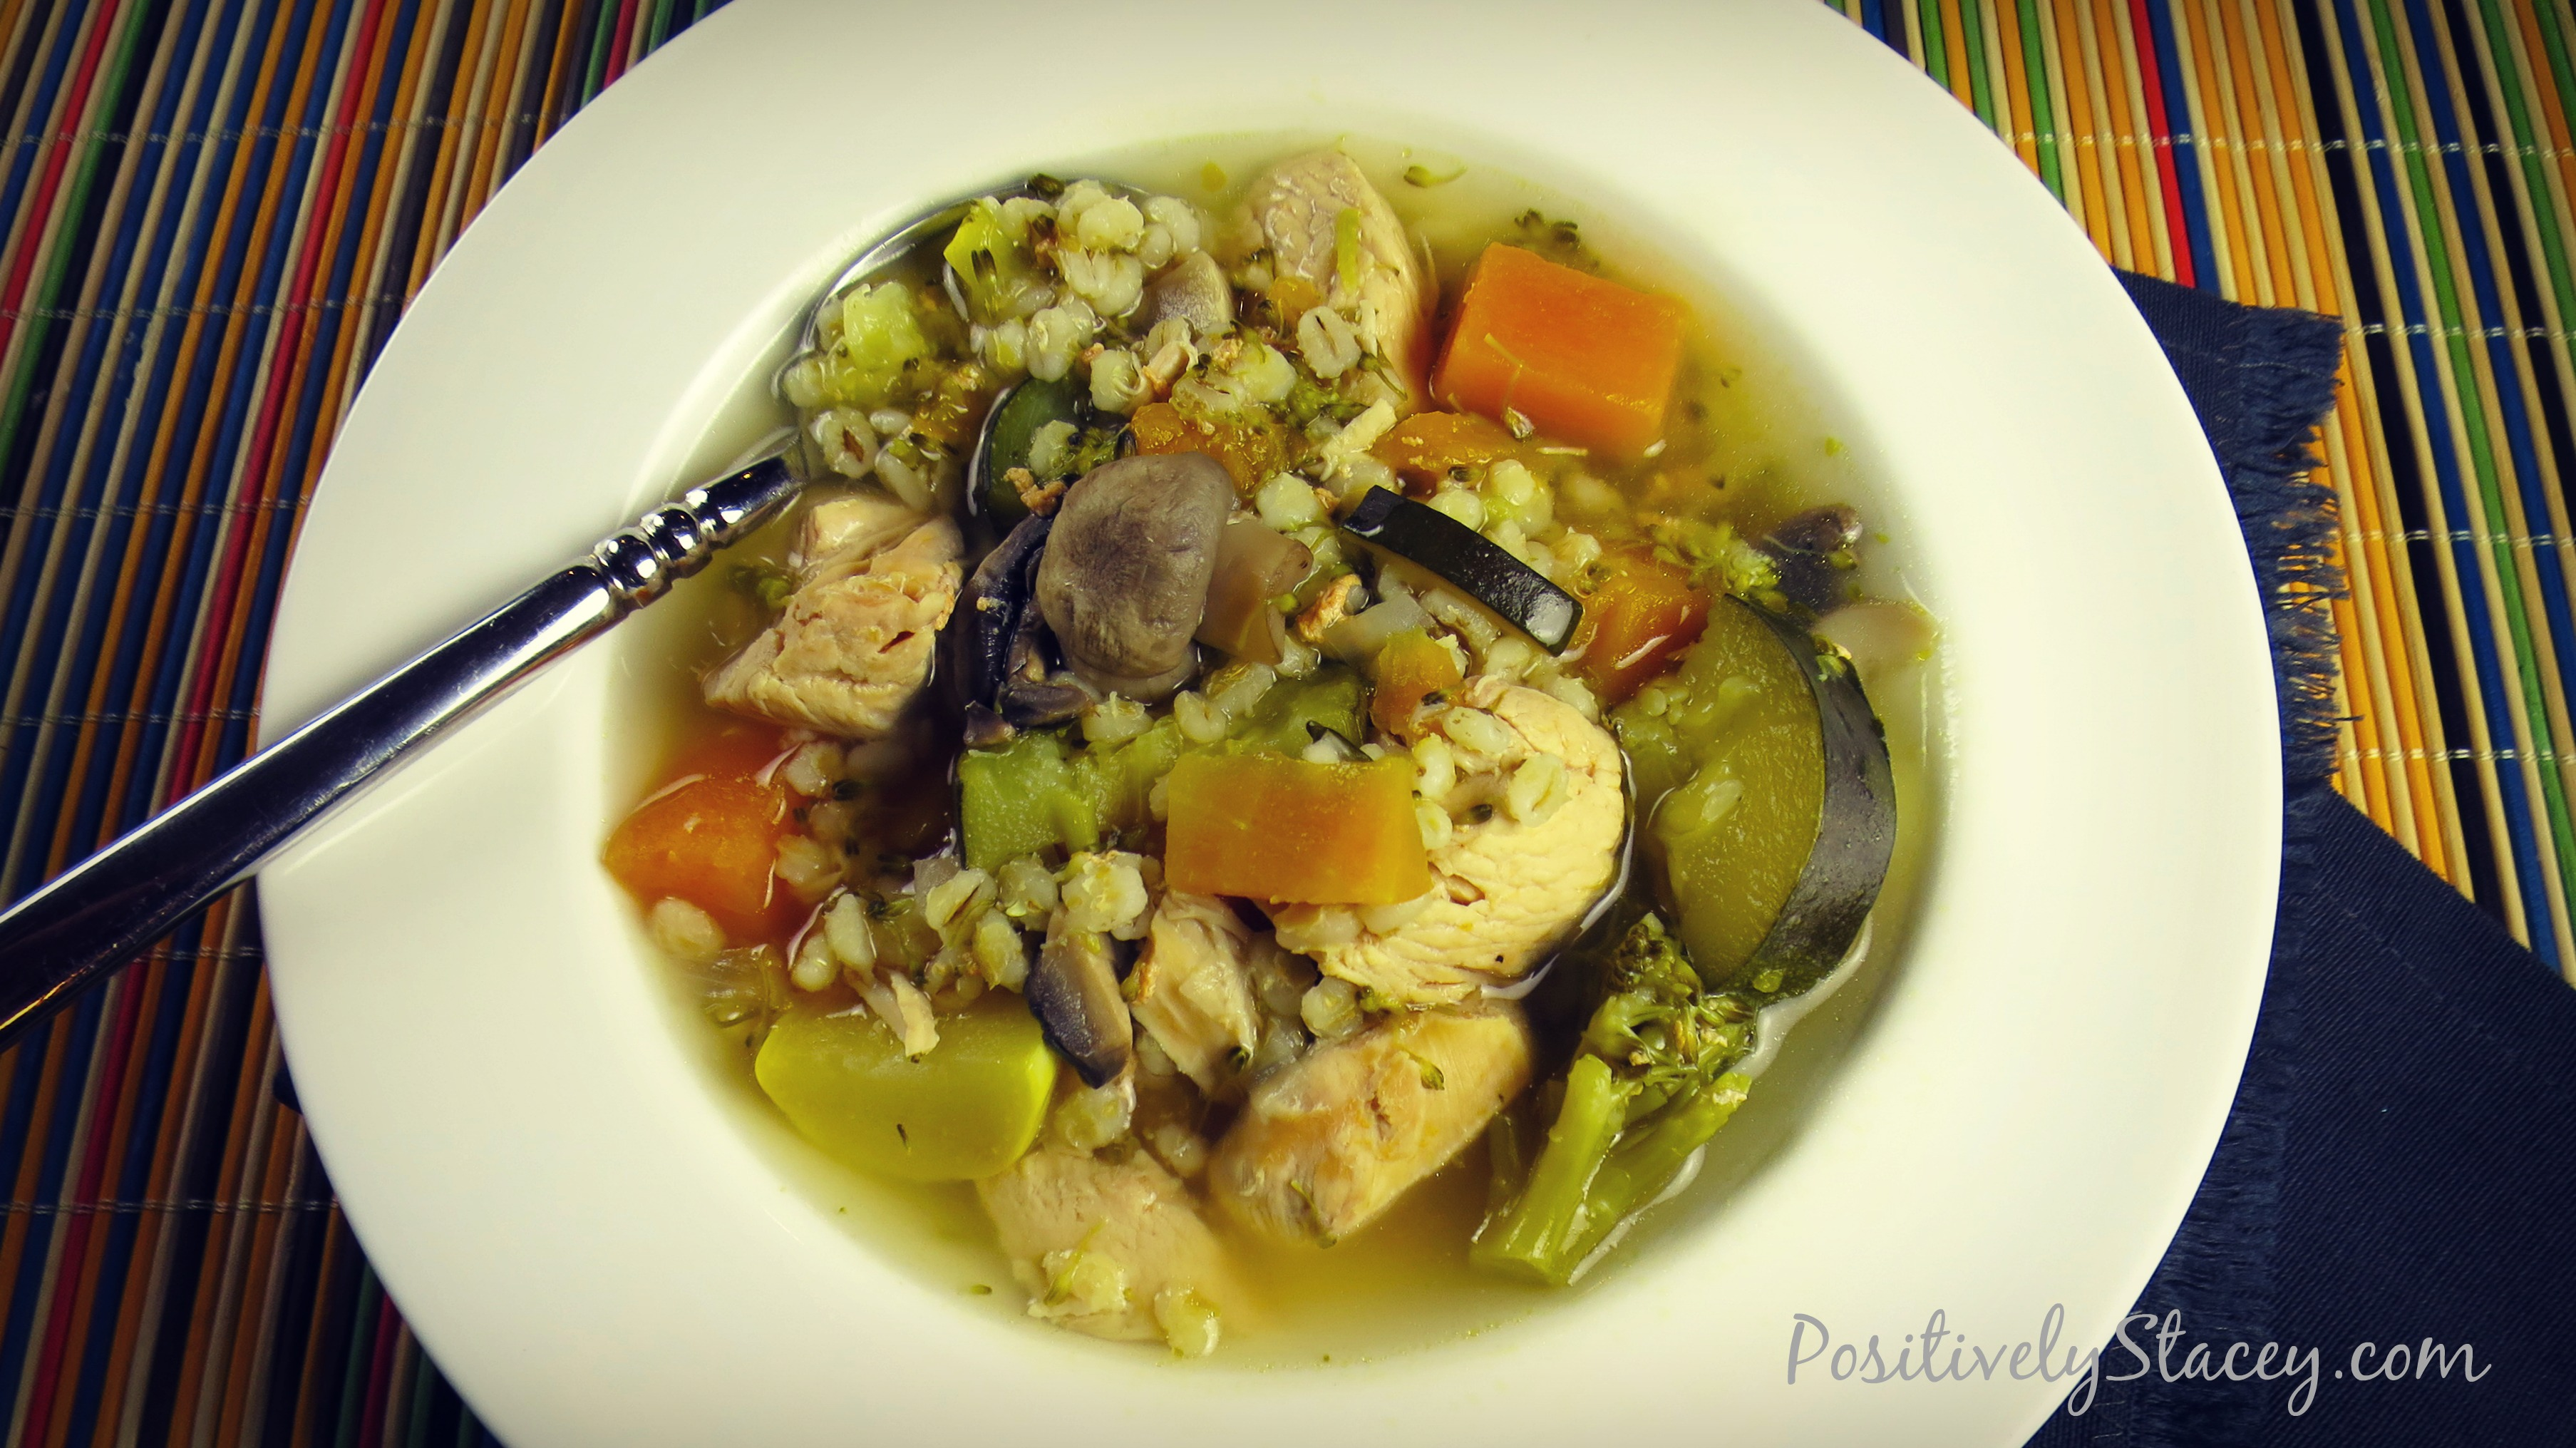 Chicken and Barely Soup - FMD Phase One